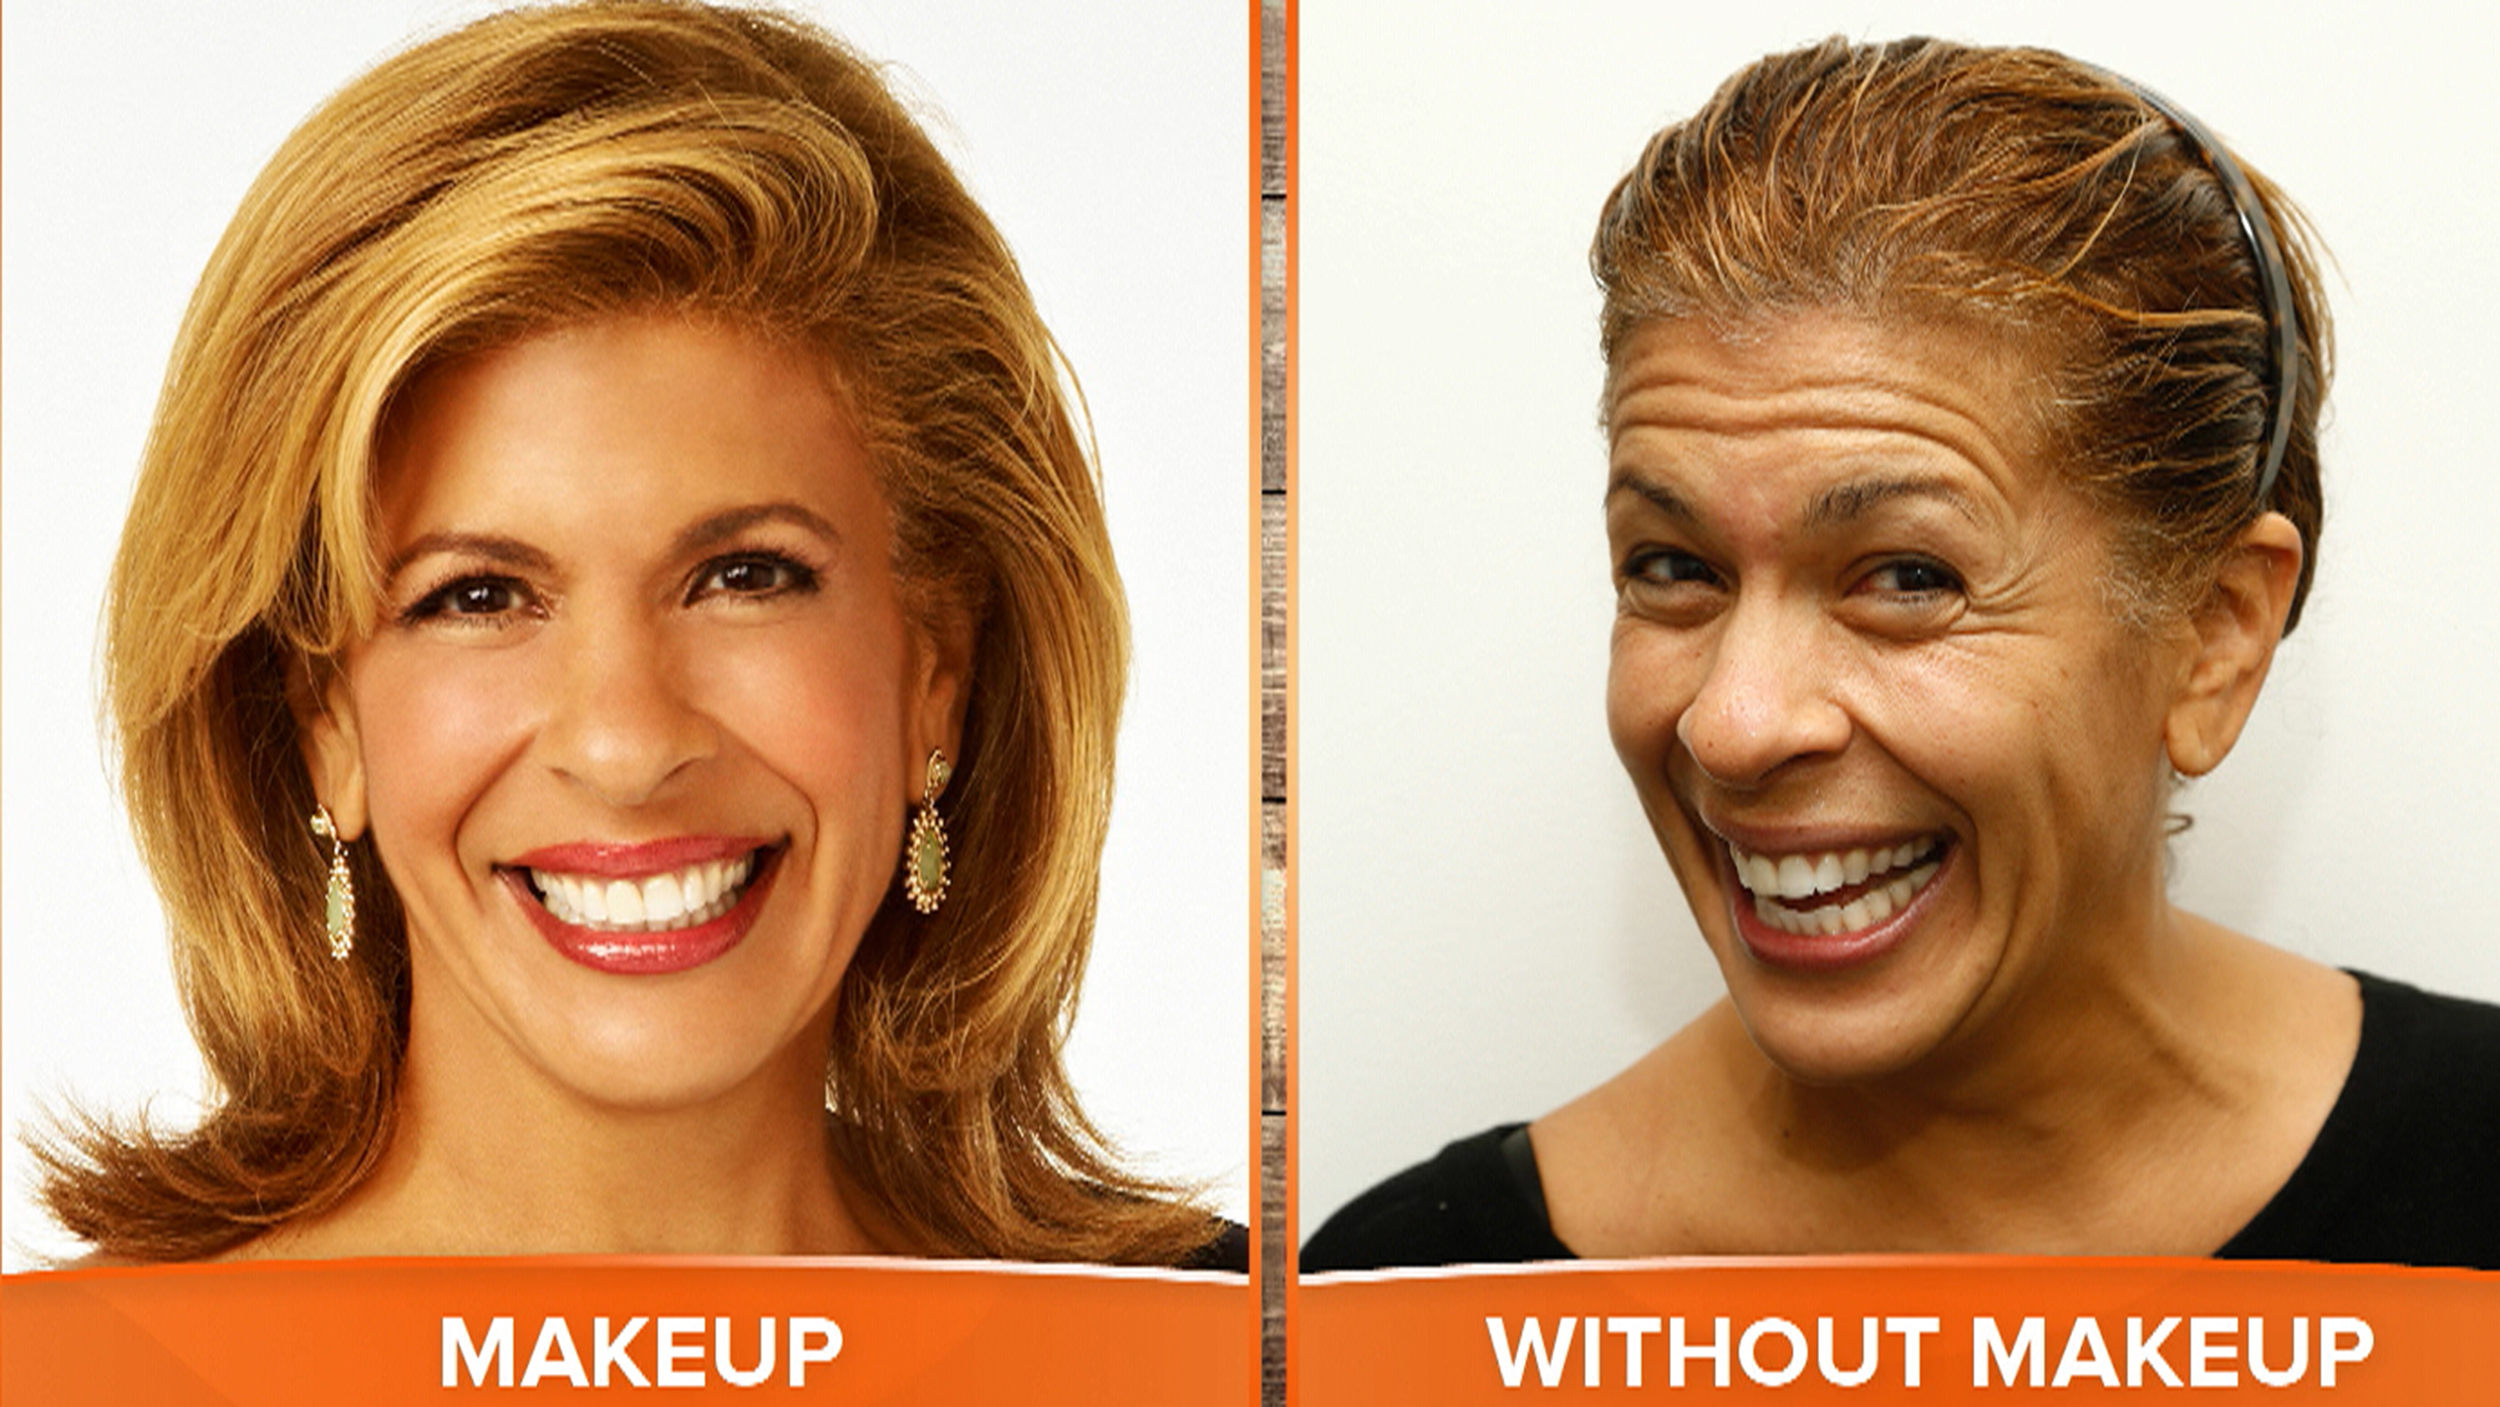 TODAY anchors (and you) dare to bare on No Makeup Monday ...